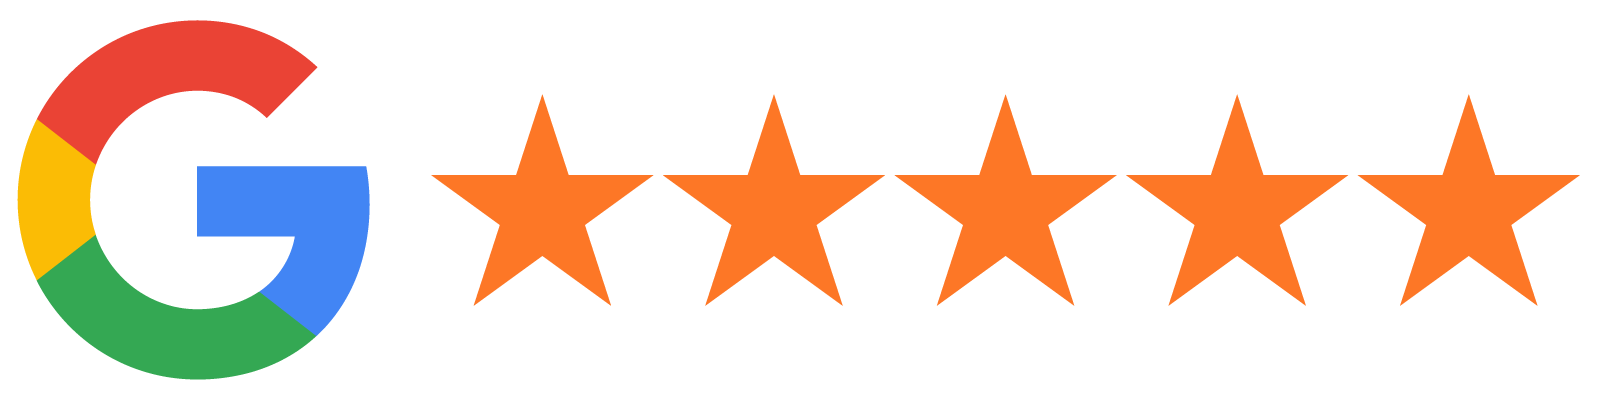 Google-Reviews-5-star-graphic